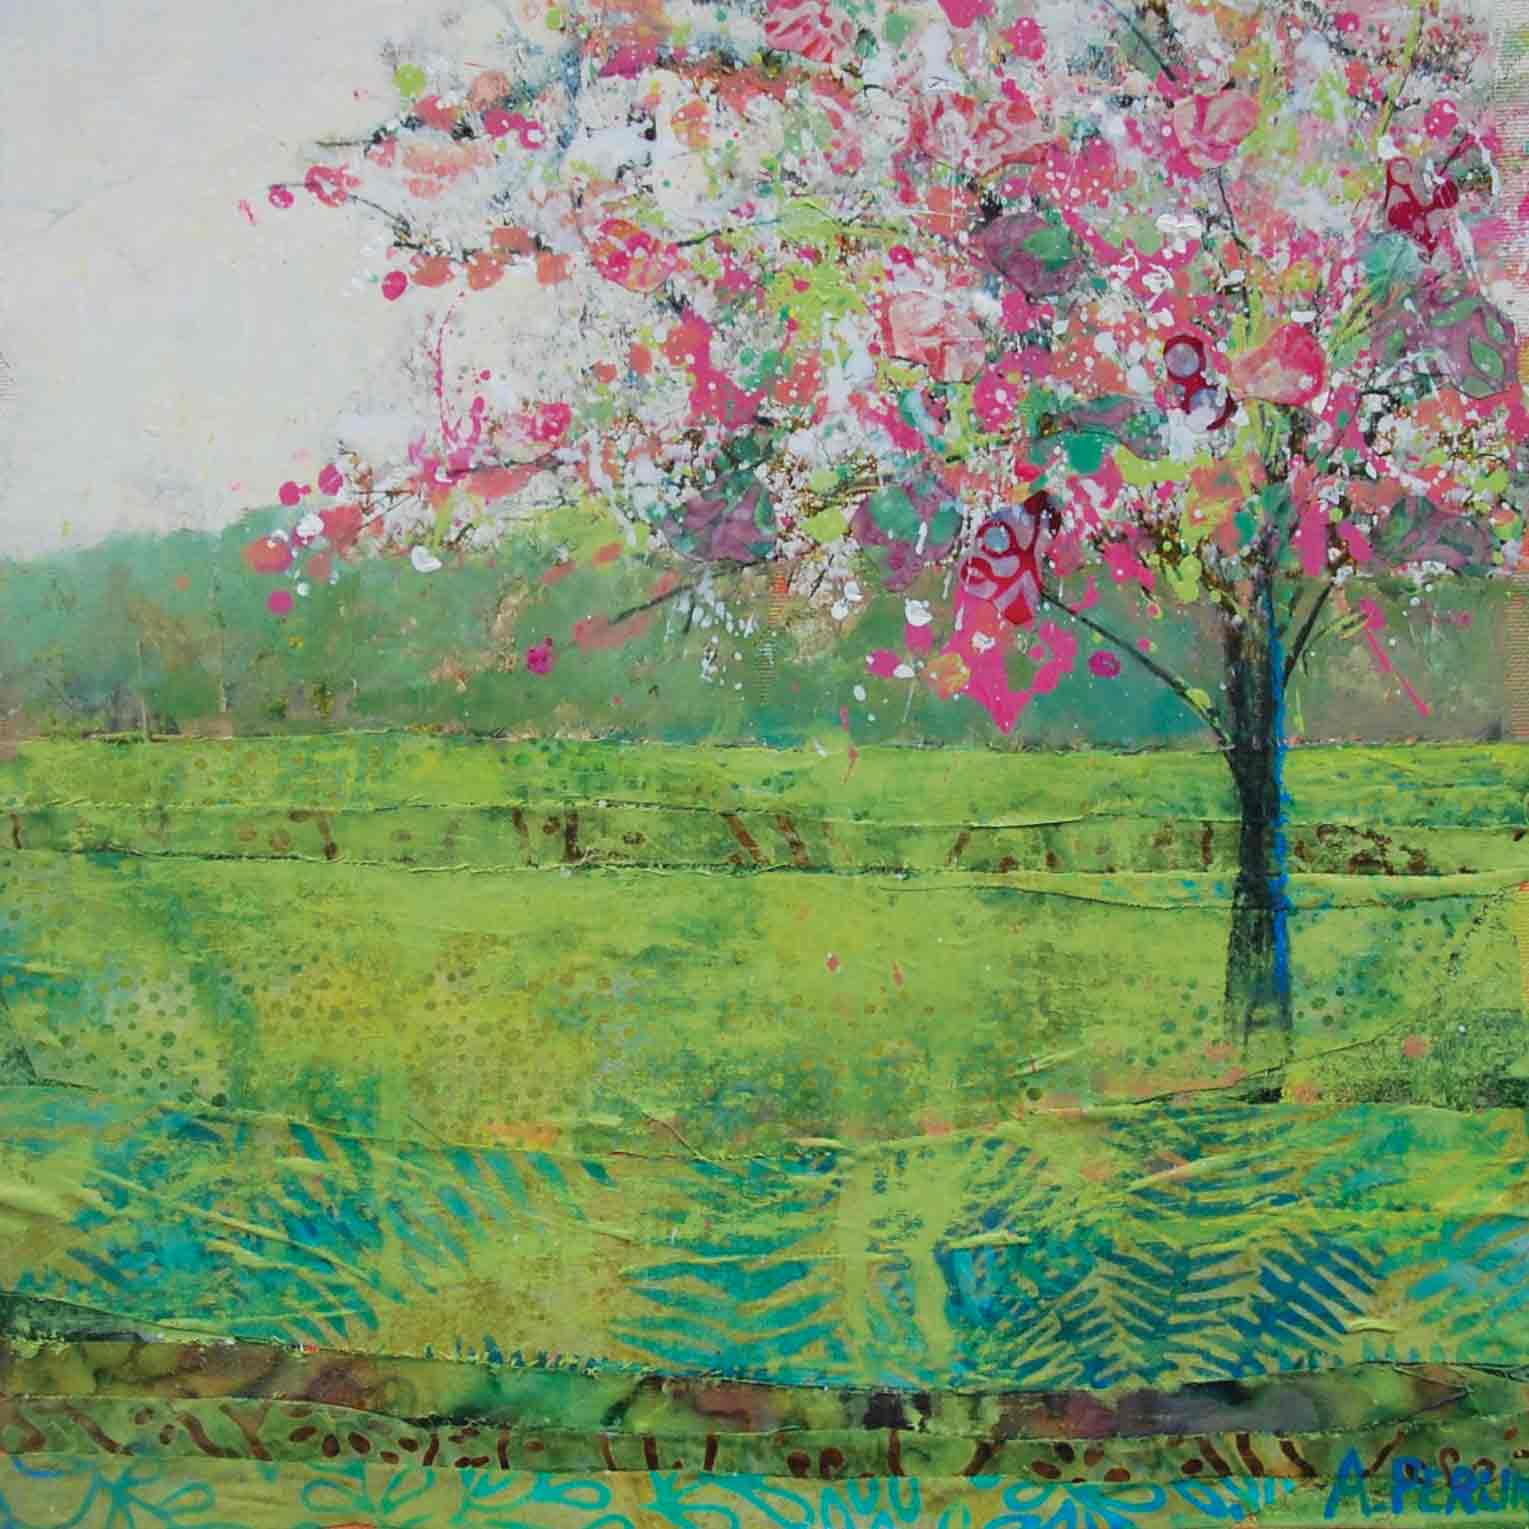 Art Greeting Card by Anna Perlin, Spring at Last, Mixed Media, Blossom tree in green field